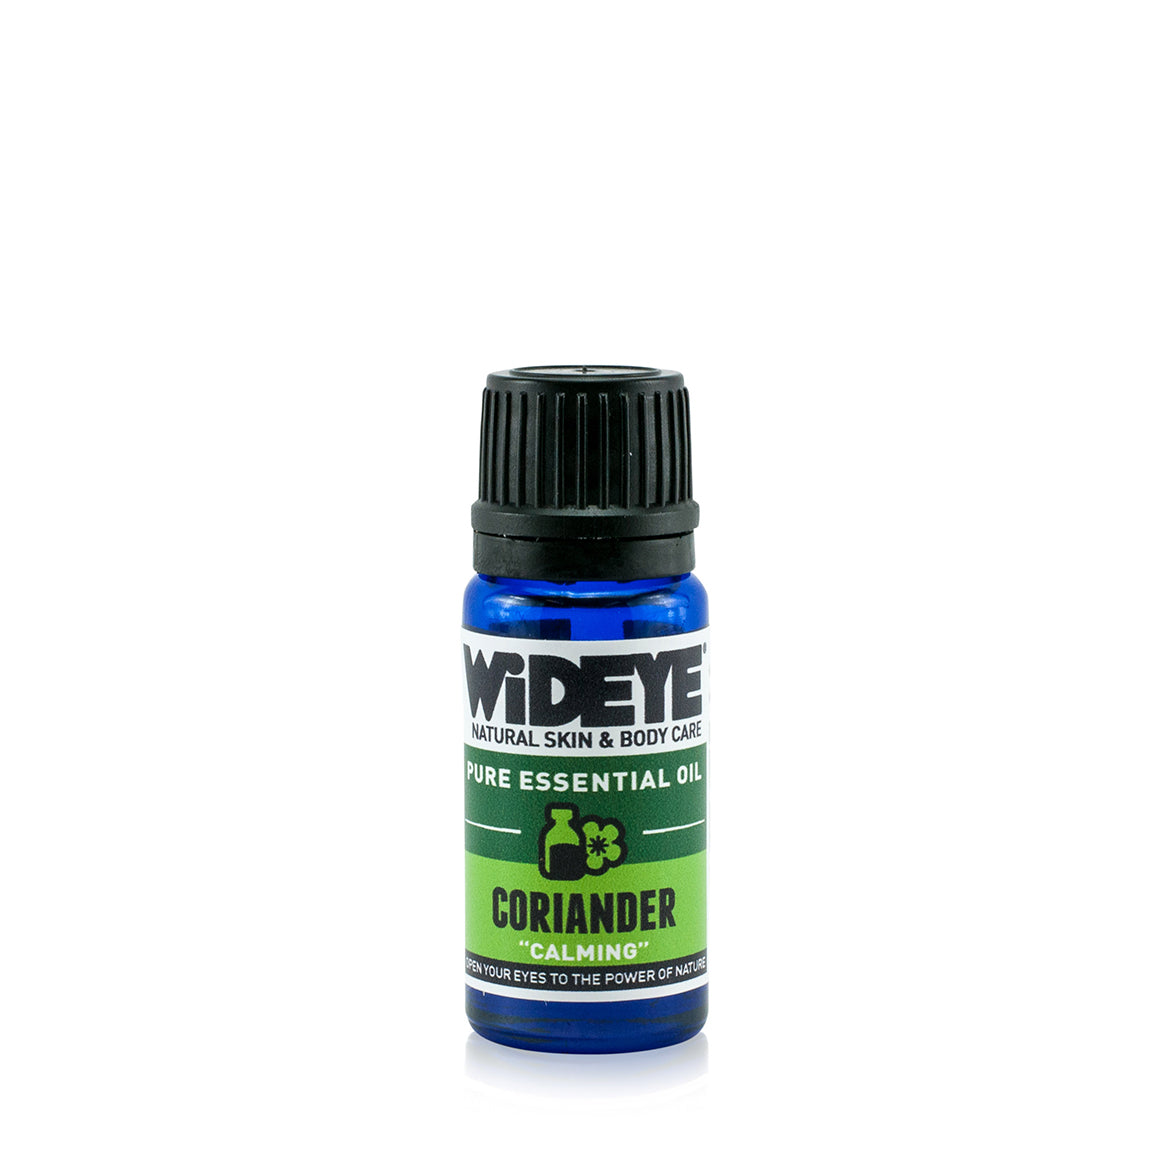 Natural aromatherapy Coriander essential oil in glass bottle by WiDEYE